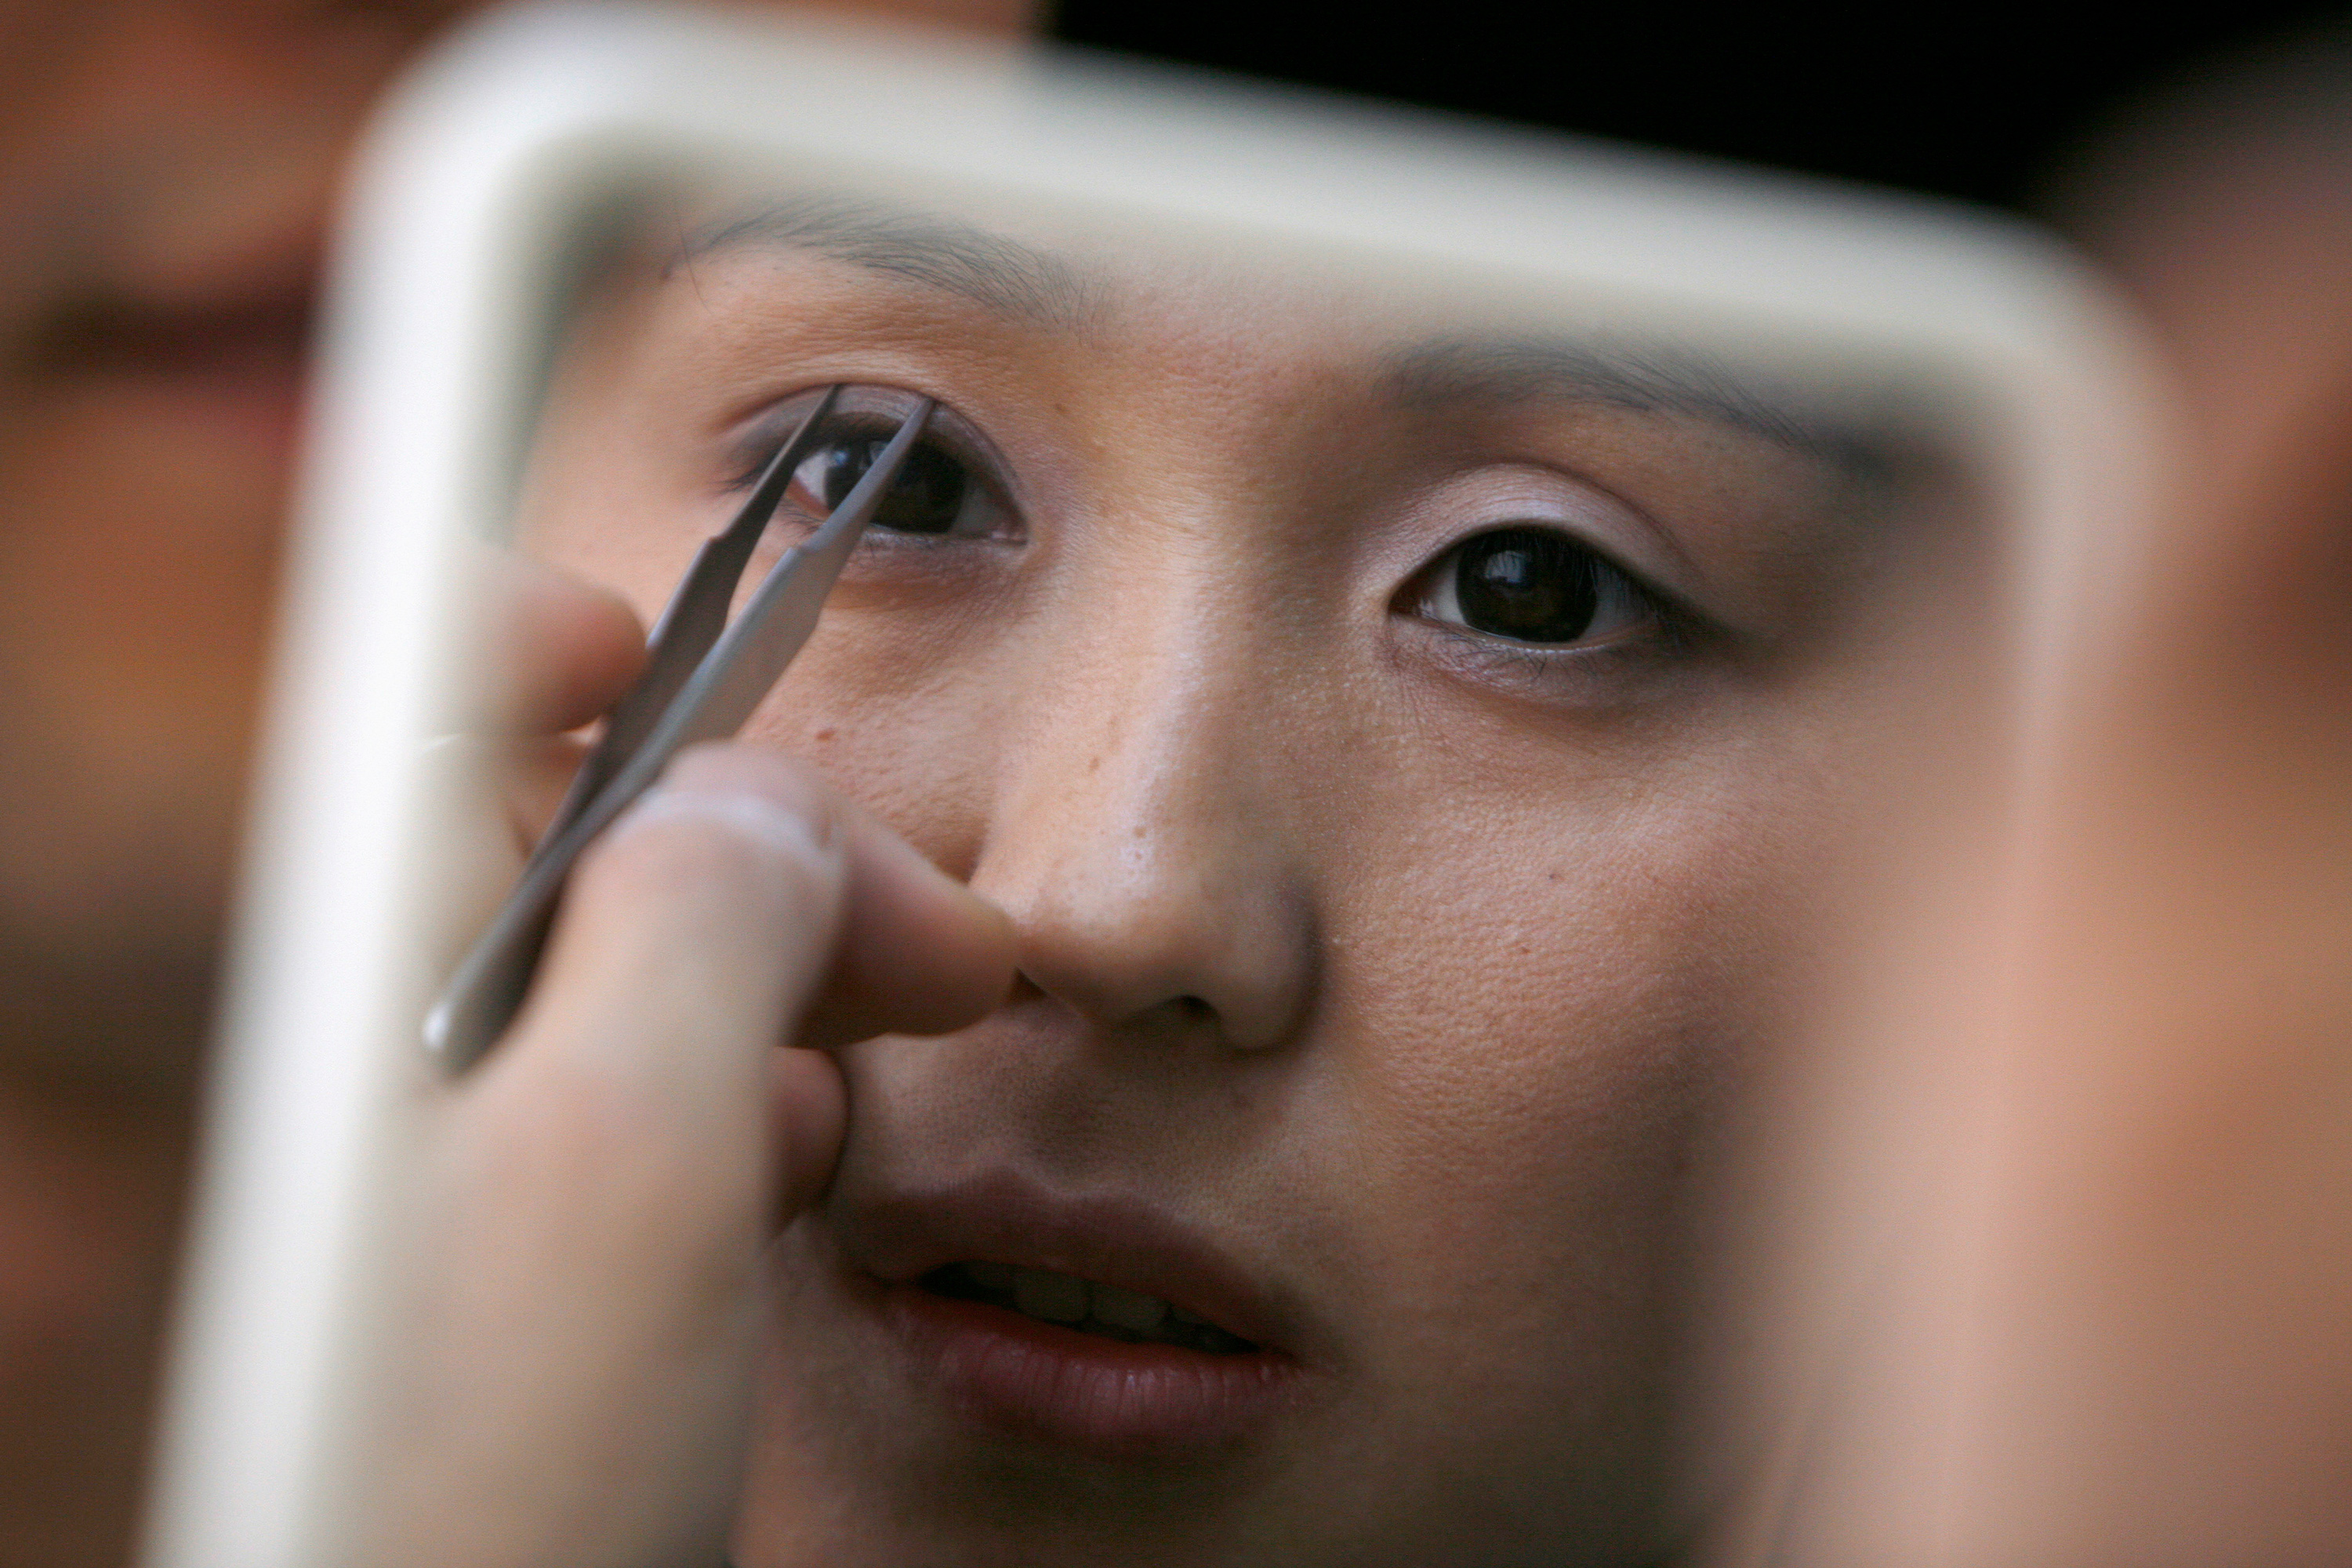 Why the 'fox eye' beauty trend is being slammed as racially insensitive - CNN Style